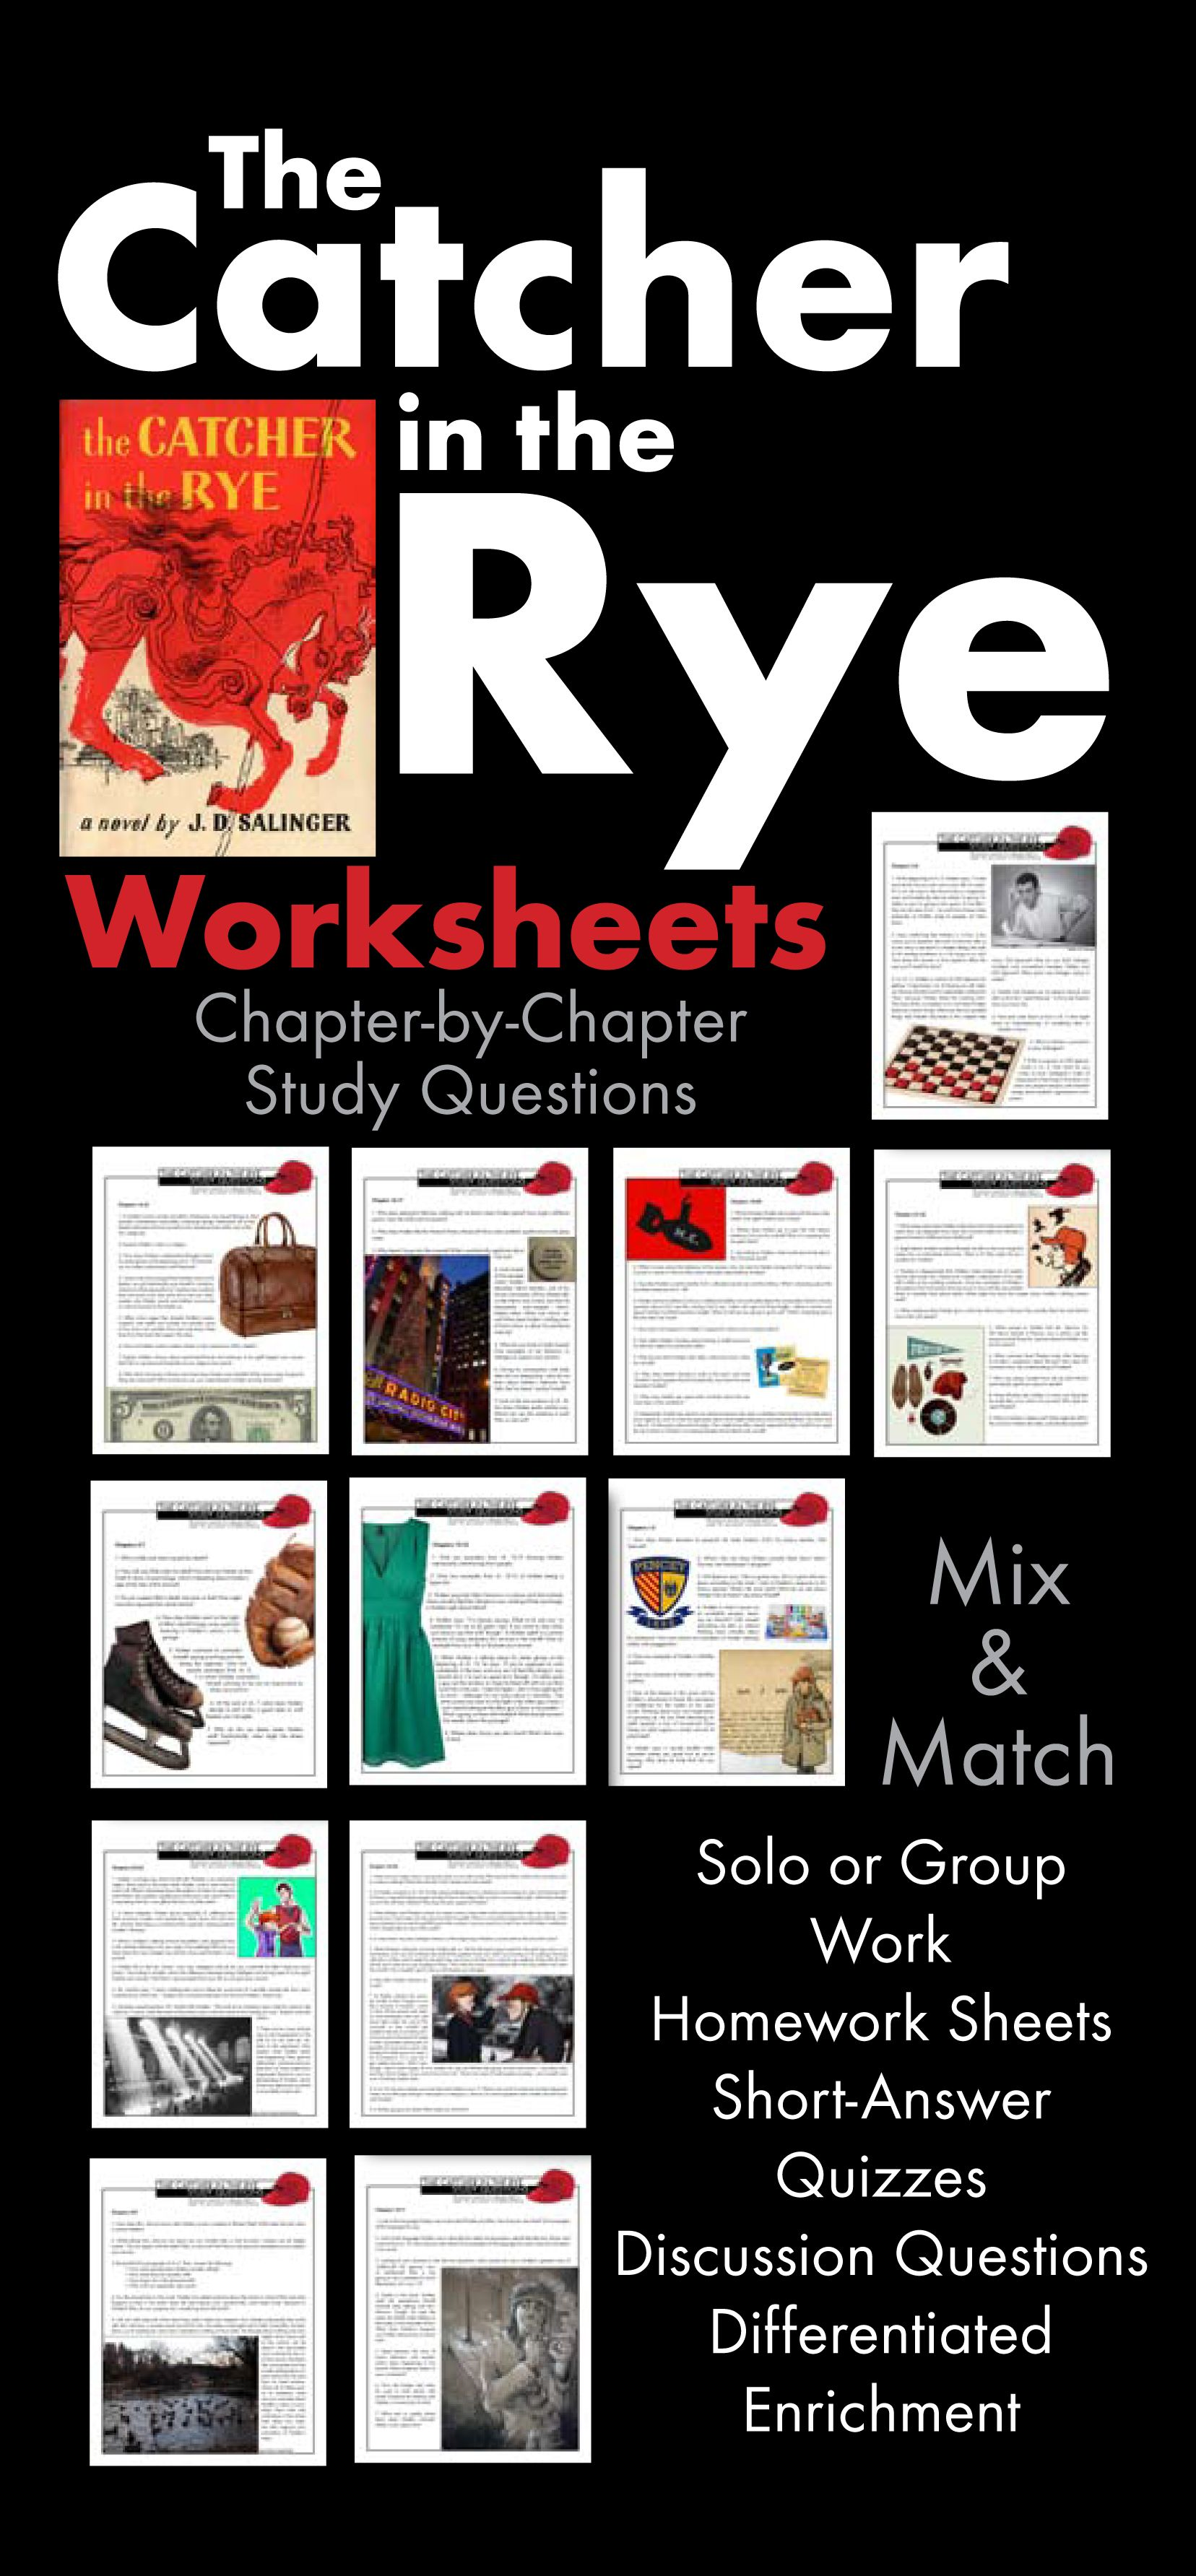 Worksheets Catcher In The Rye Worksheets catcher in the rye worksheets quizzes discussion hw for j d salingers novel